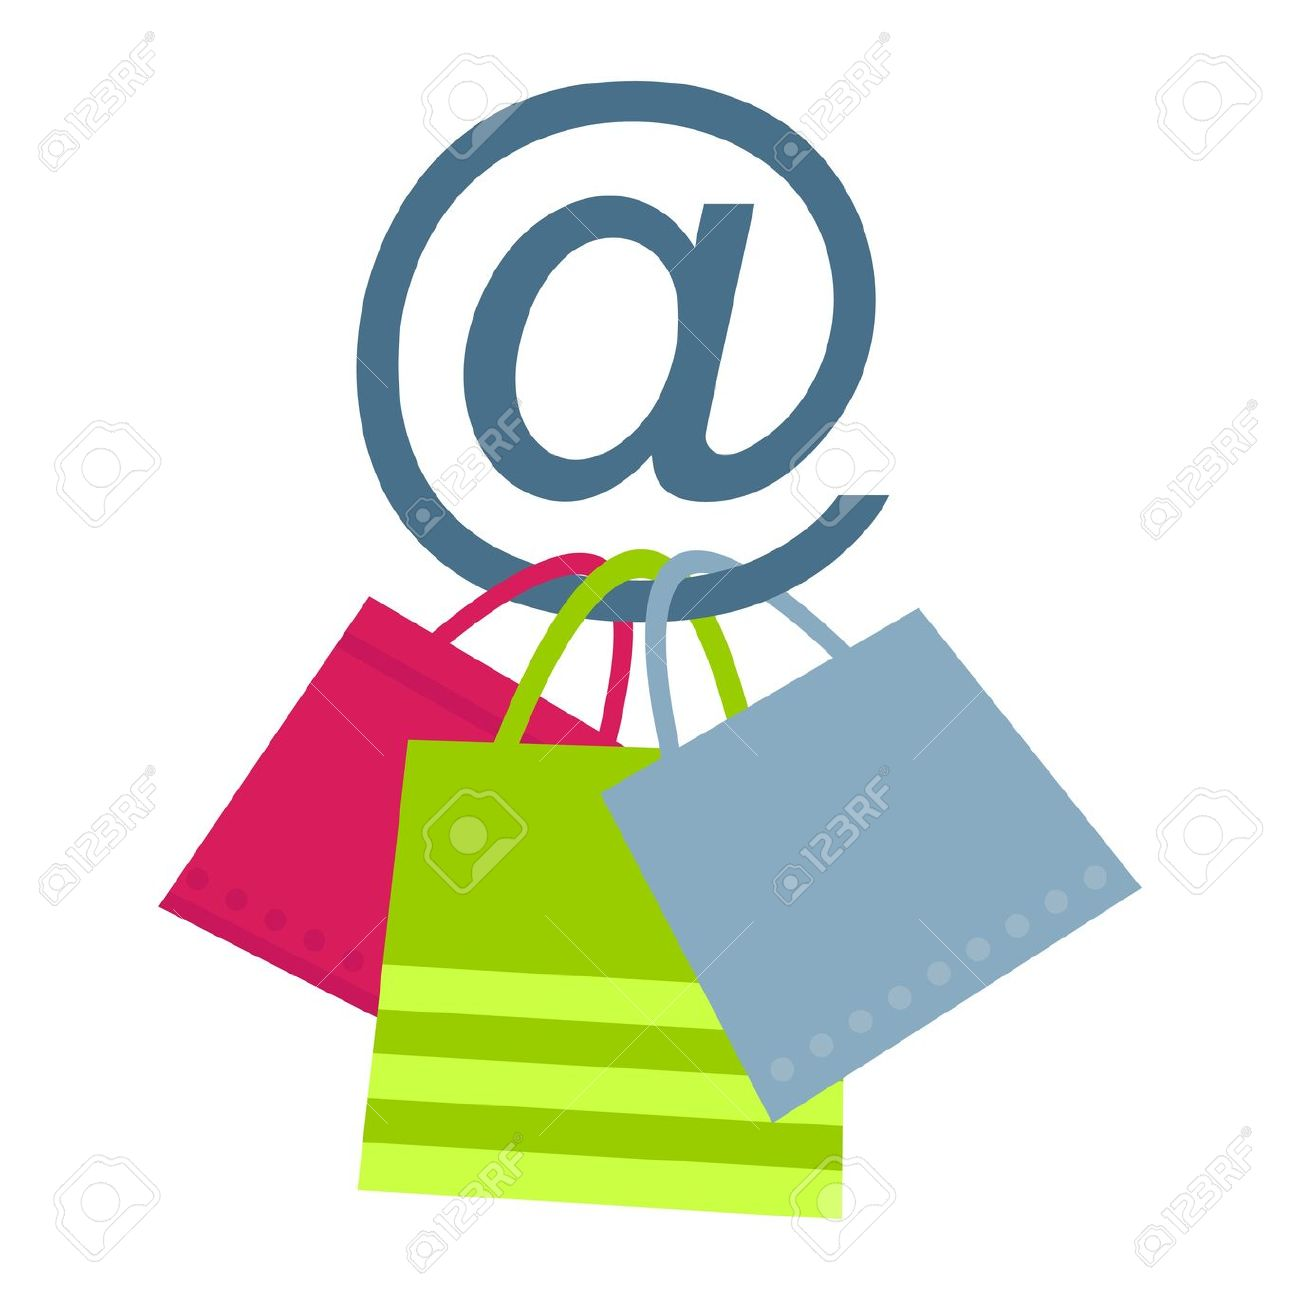 Purchase clipart online image royalty free library Purchase Online Clipart | Clipart Panda - Free Clipart Images image royalty free library